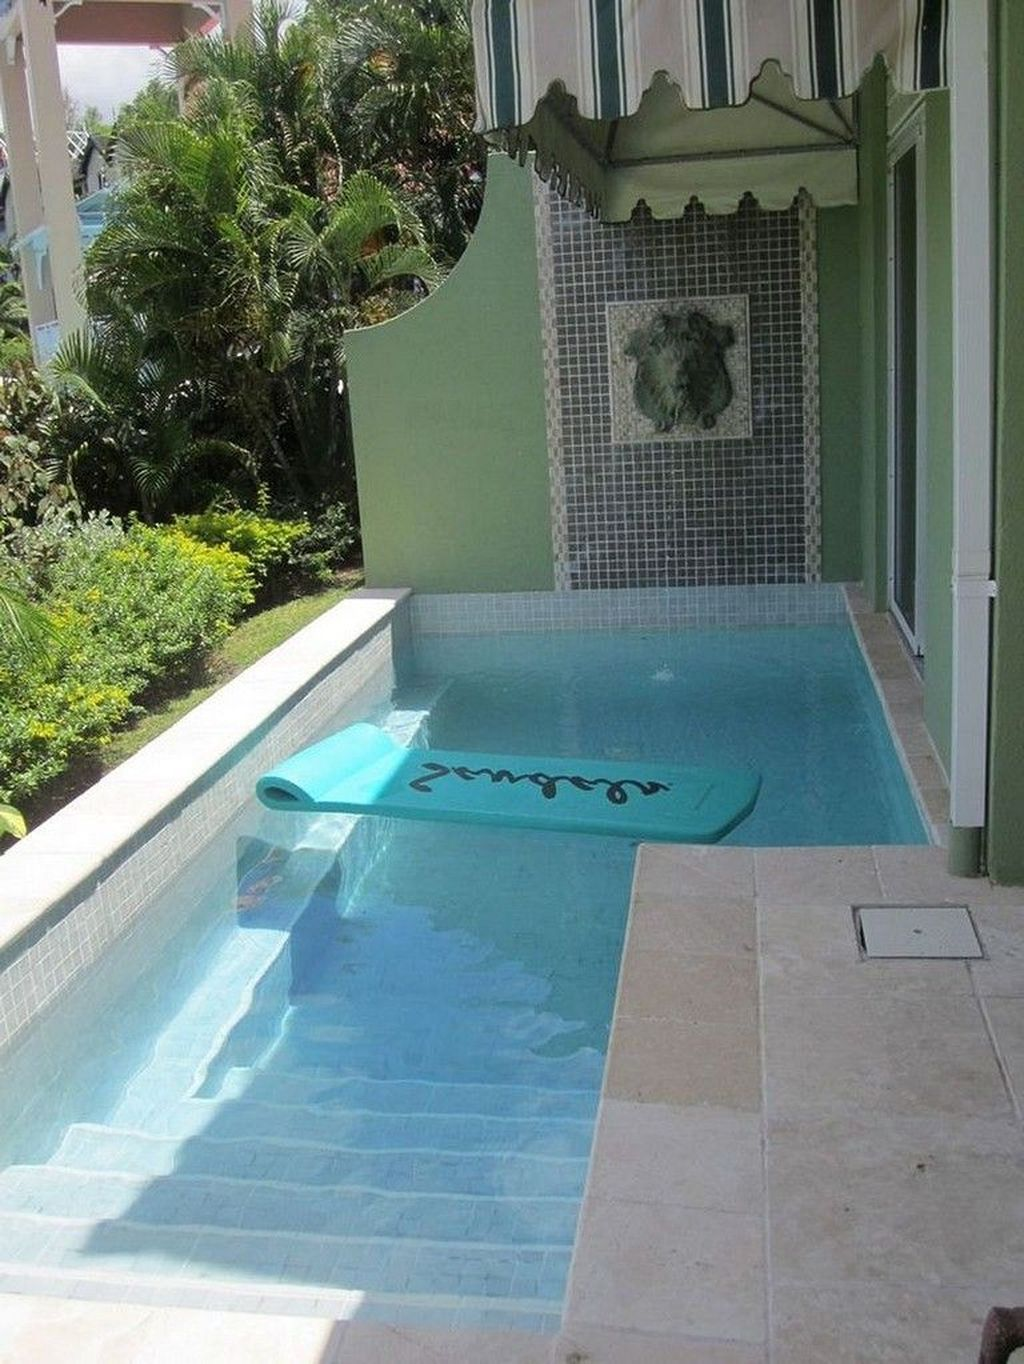 30 Modern Small Swimming Pool Design Ideas For Backyard Trenduhome Swimming Pool Designs Swimming Pools Backyard Small Pool Design